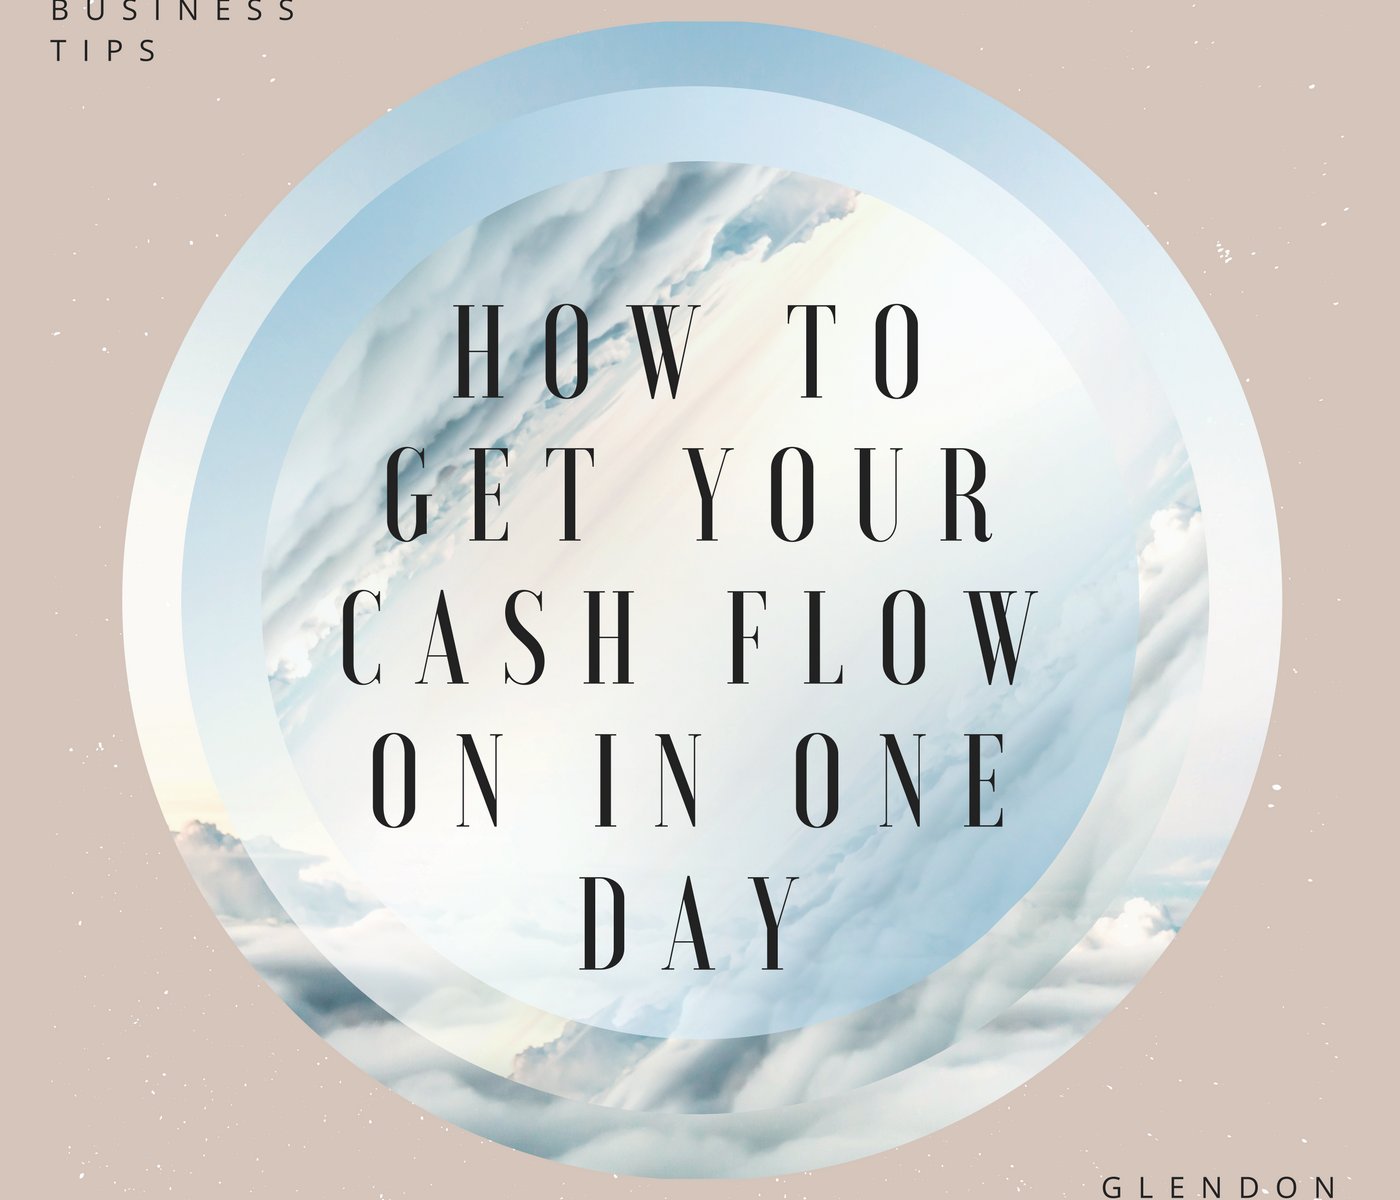 Basic Business Tips How to Get Your Cash Flow on in One Day